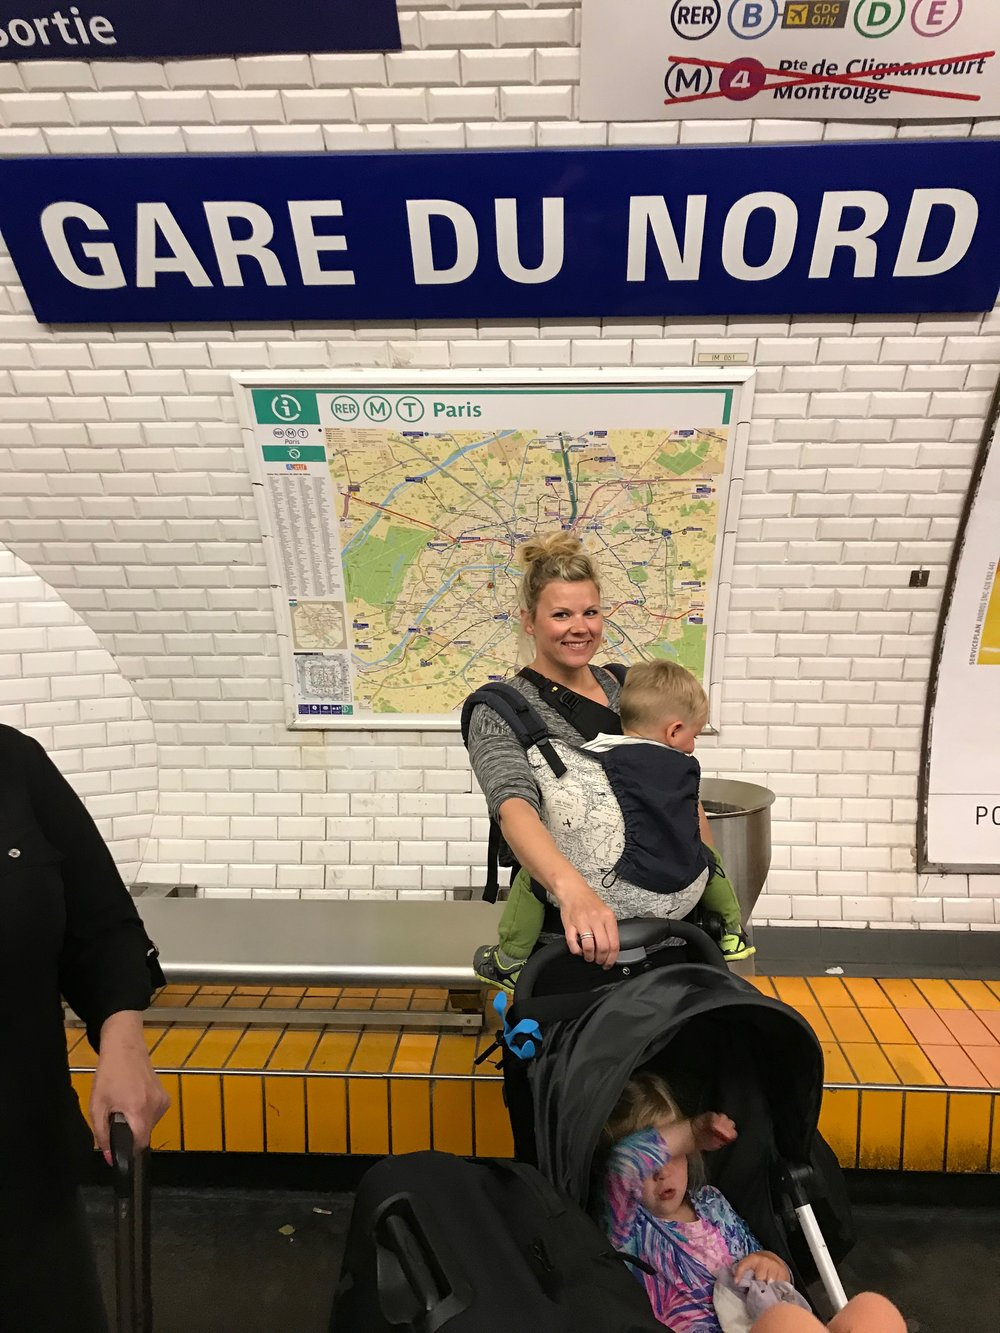 Directly after this photo - we were pick pocketed. Gare Du Nord is one of the most trafficked metro stops in Paris.